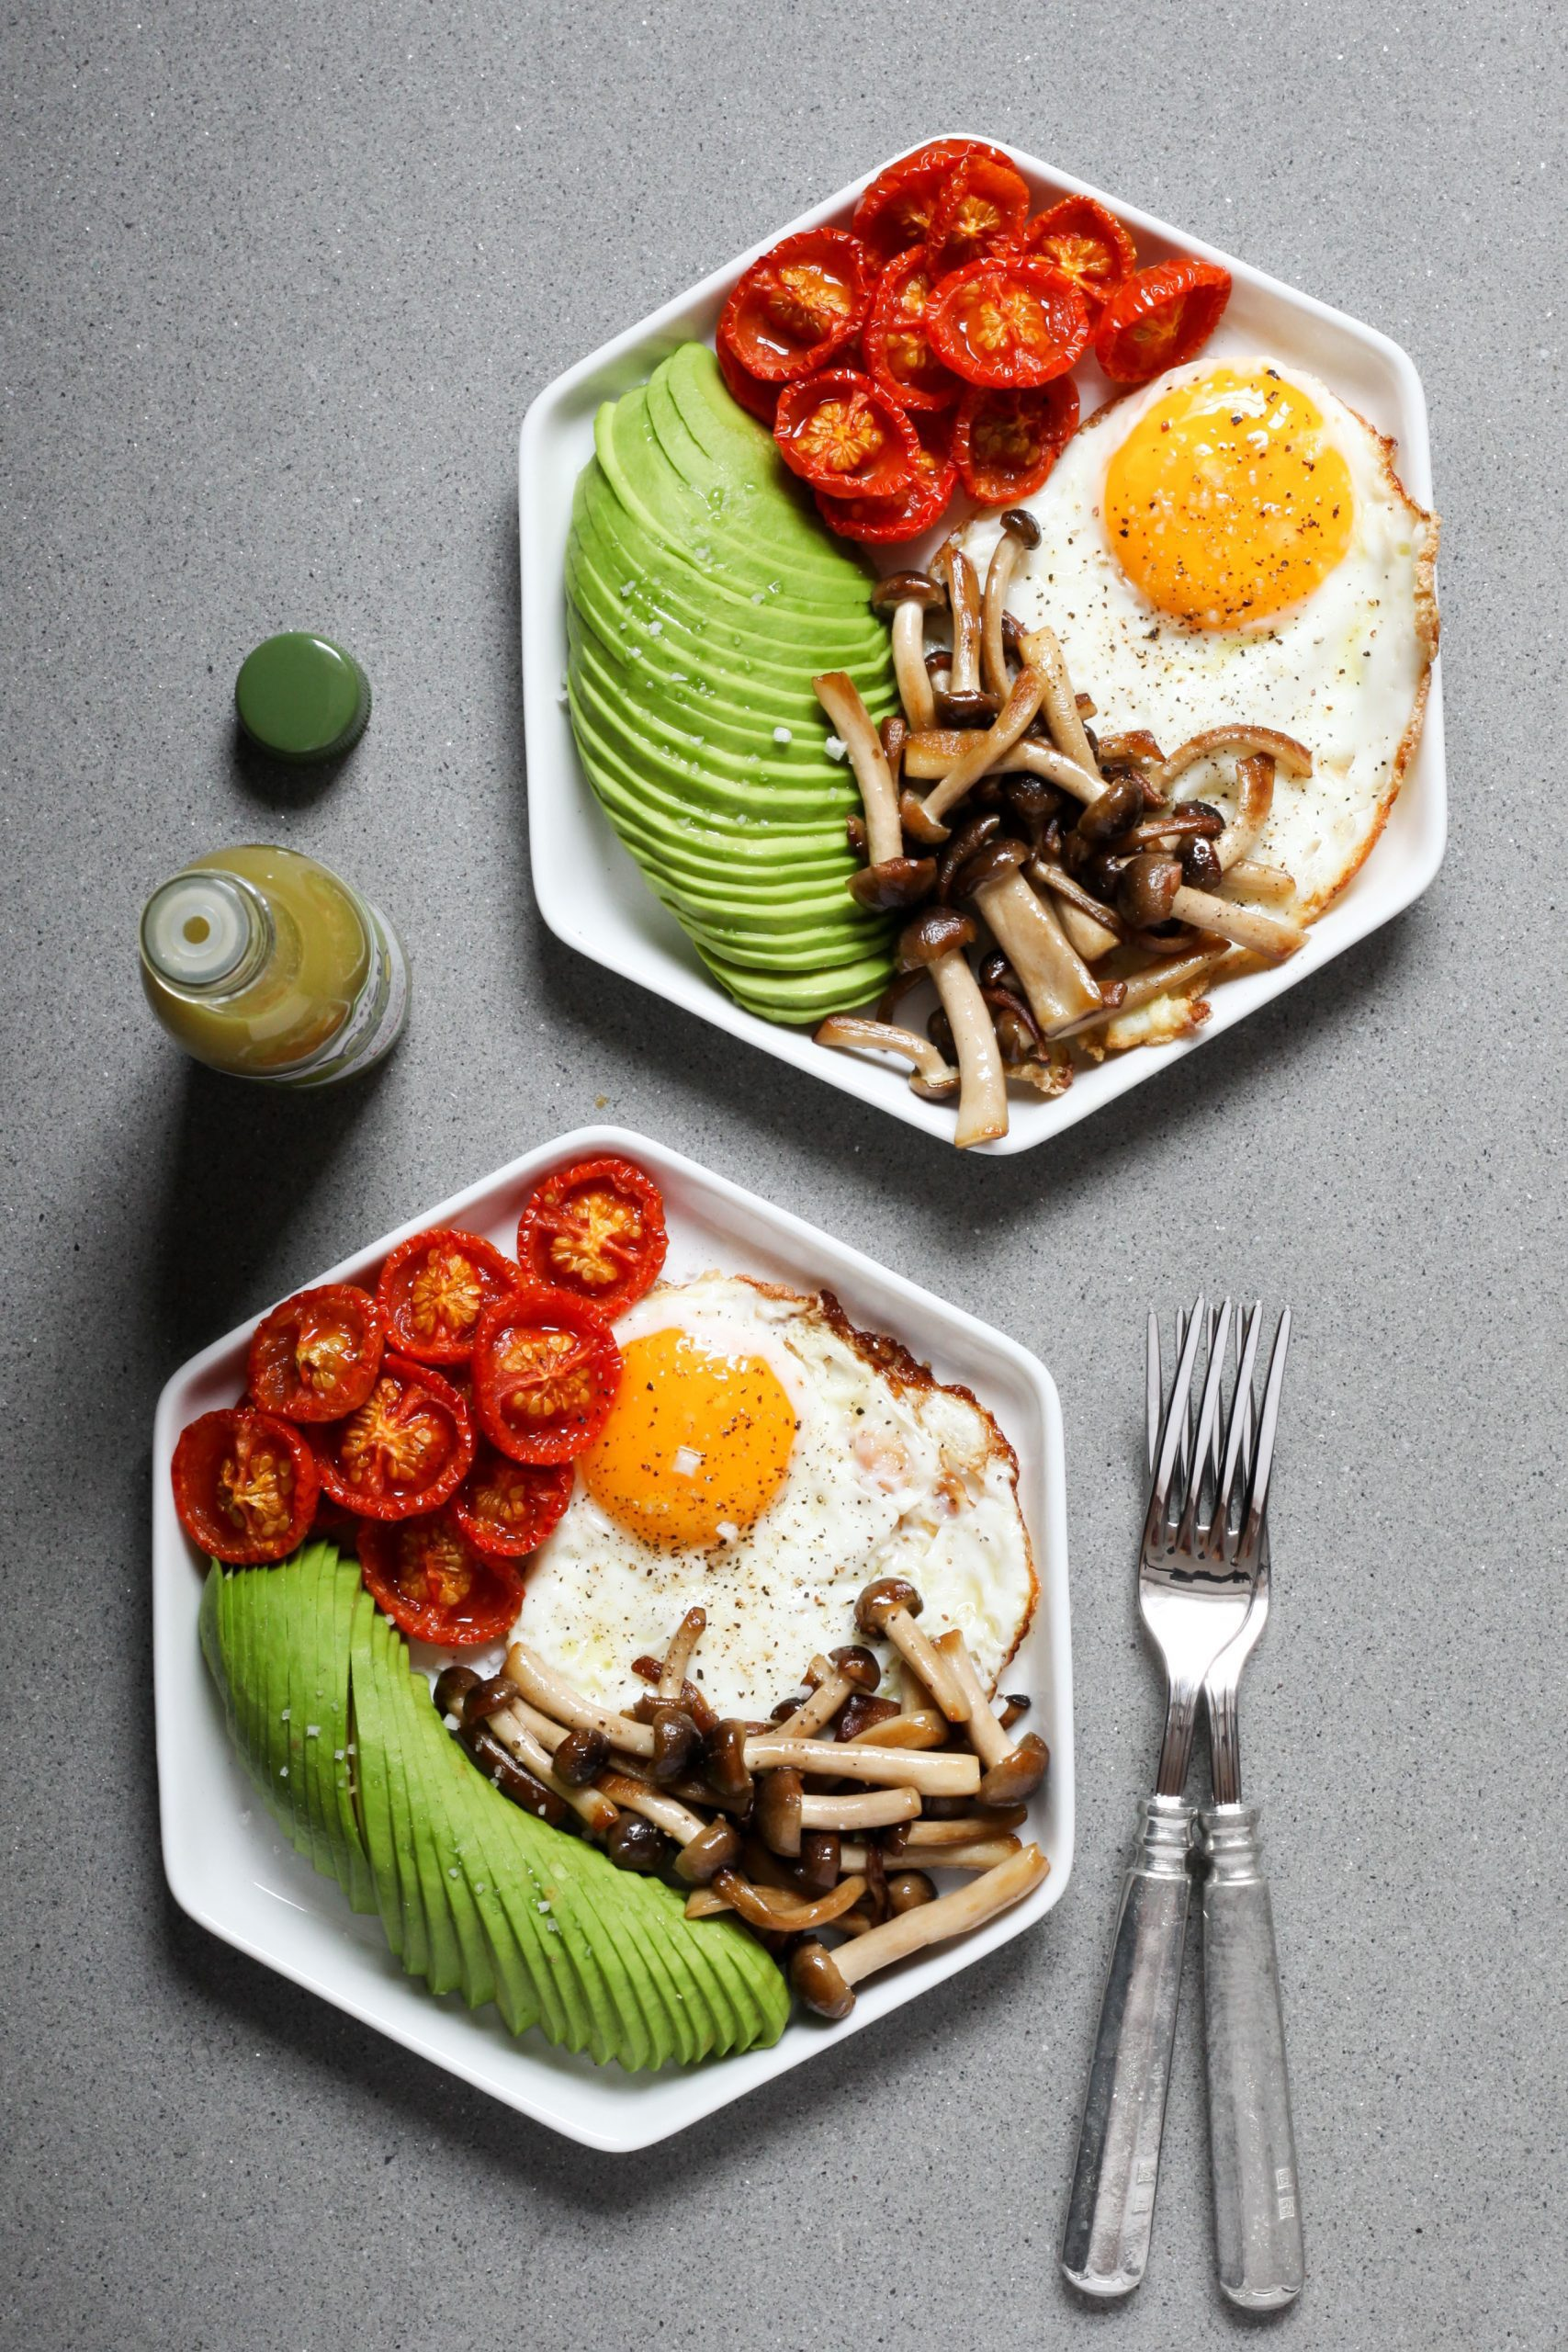 Fried Eggs with Roasted Tomatoes and Mushrooms